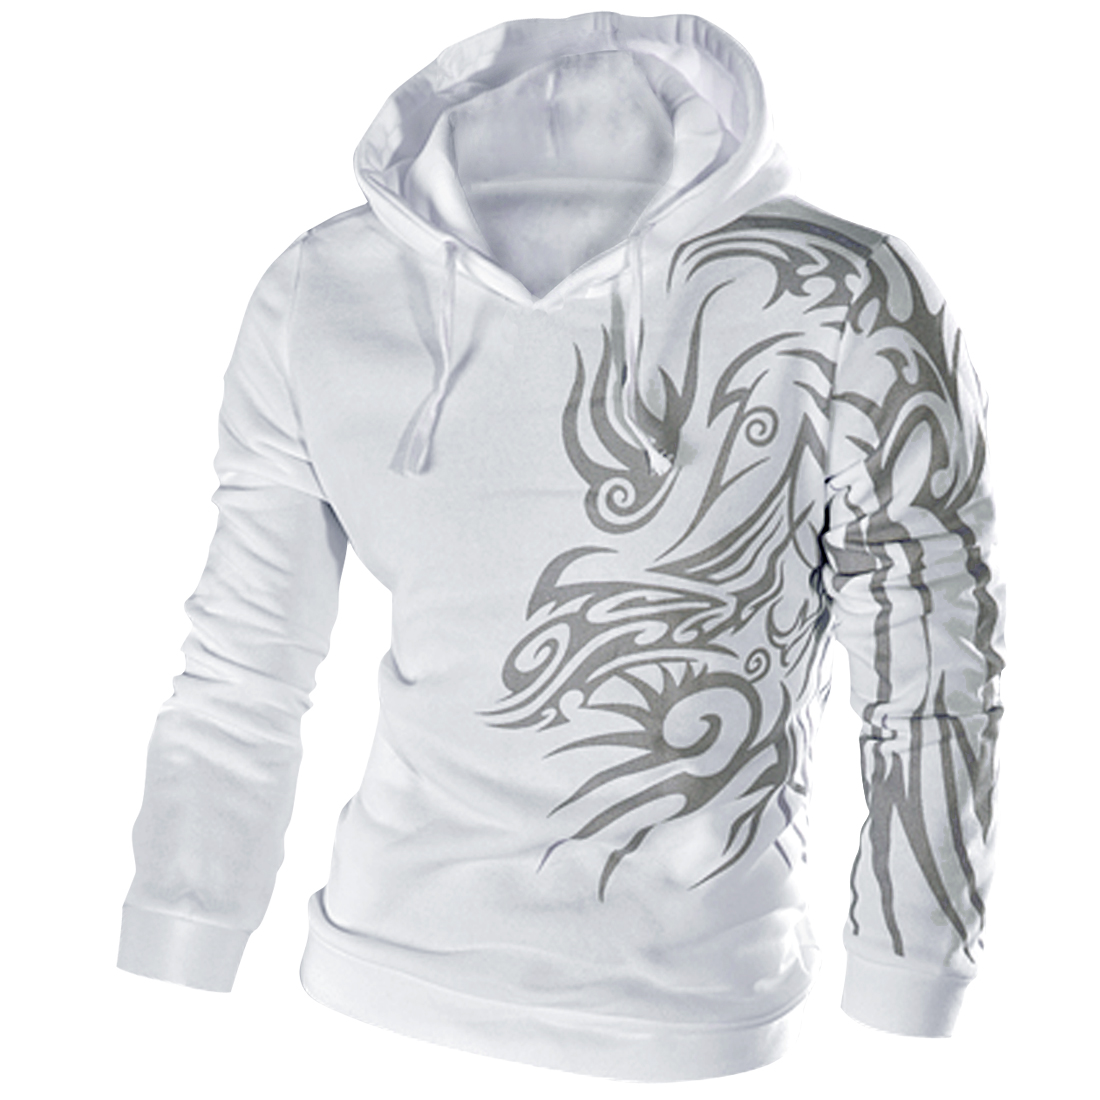 Chic Novelty Printed White Drawstring Hoodie for Man M